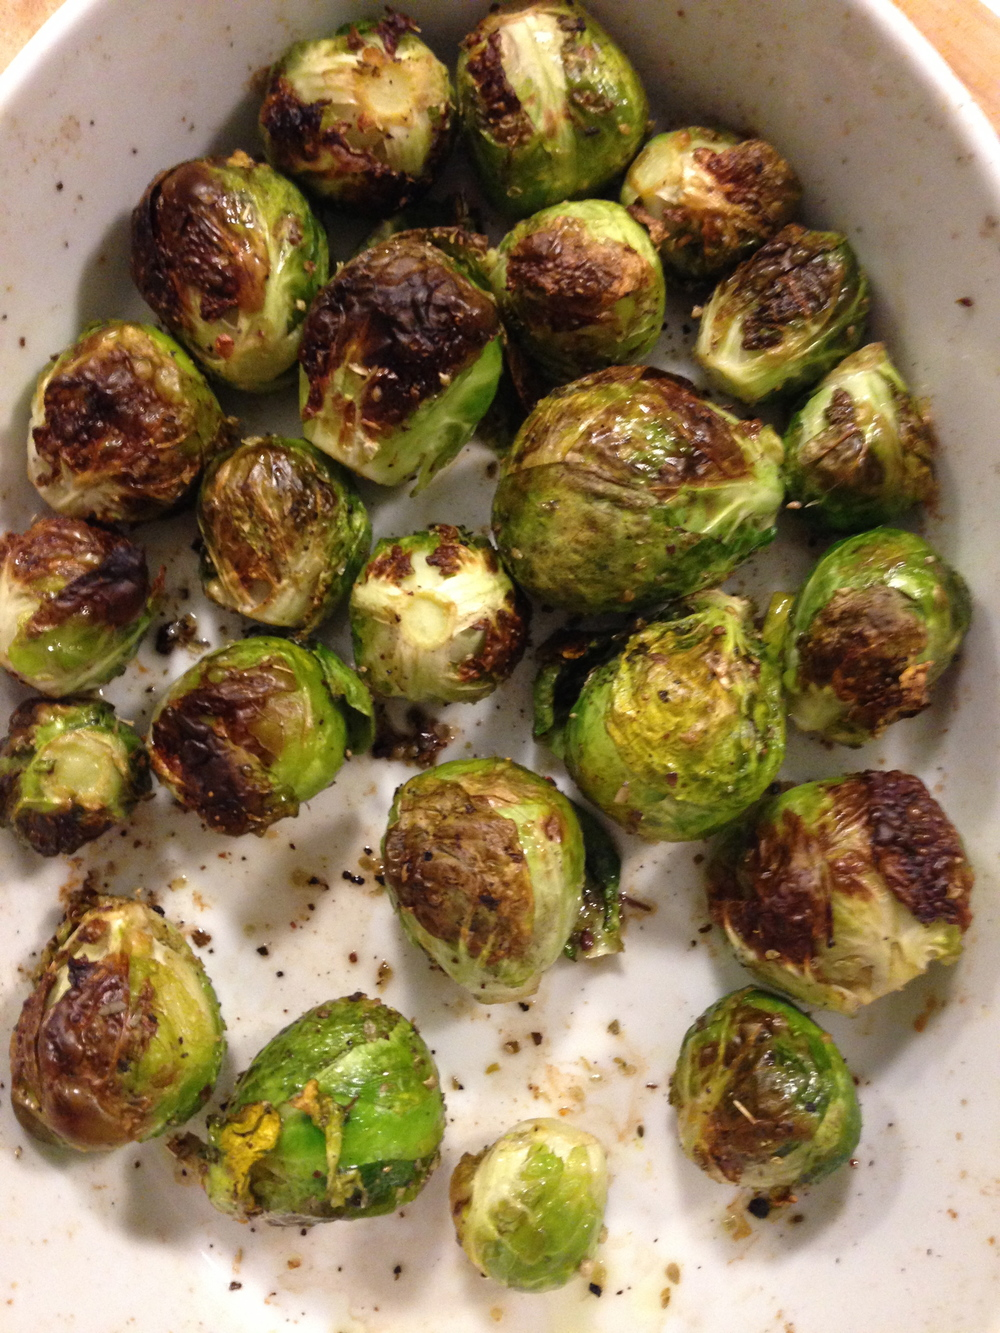 Roasted Brussels sprouts. Delicious and filling.